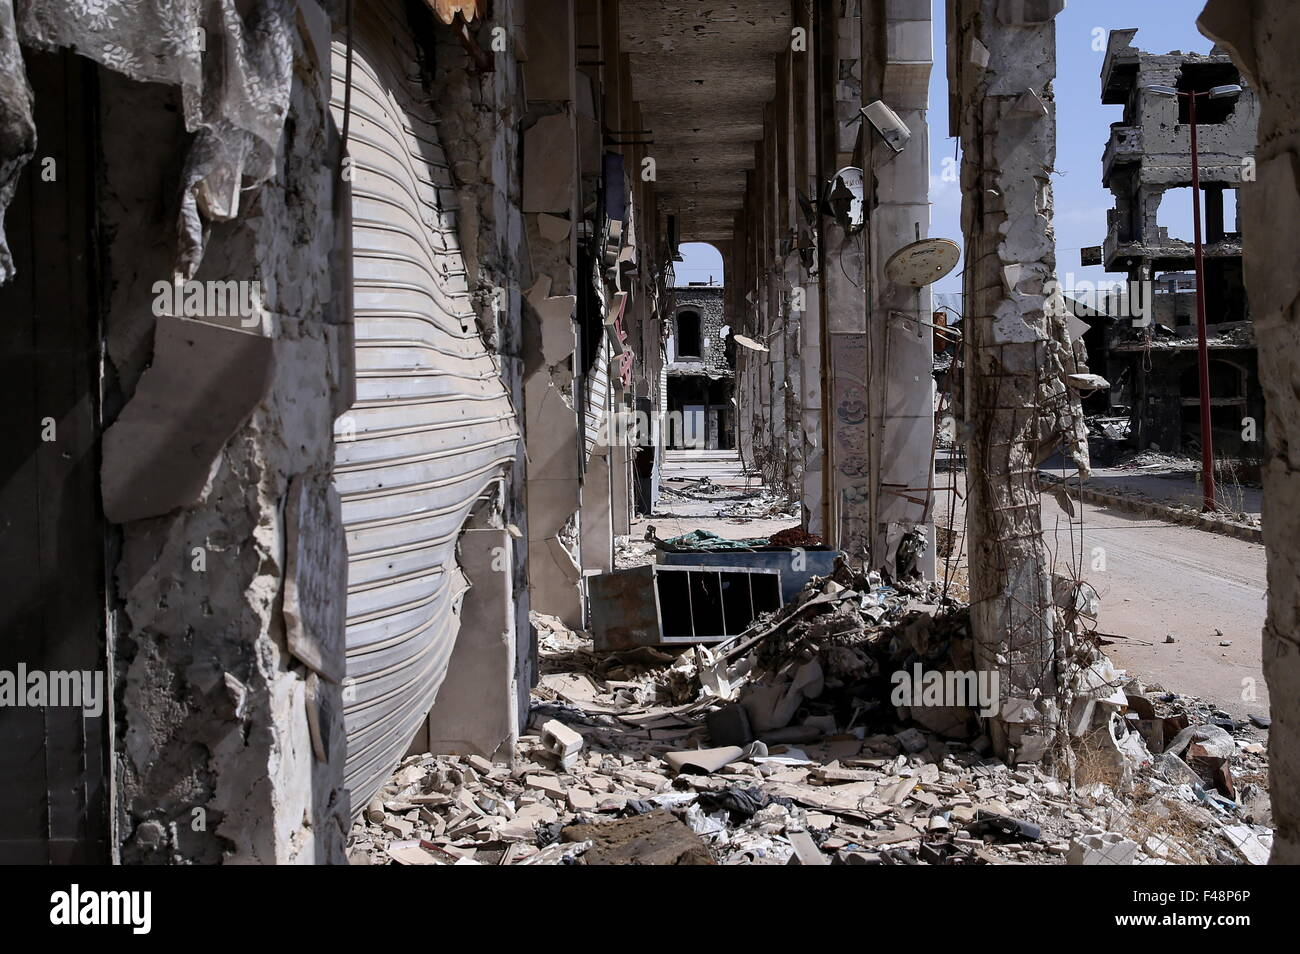 Homs, Syria. 14th Oct, 2015. A street in the Syrian city of Homs. © Valery Sharifulin/TASS/Alamy Live News - Stock Image